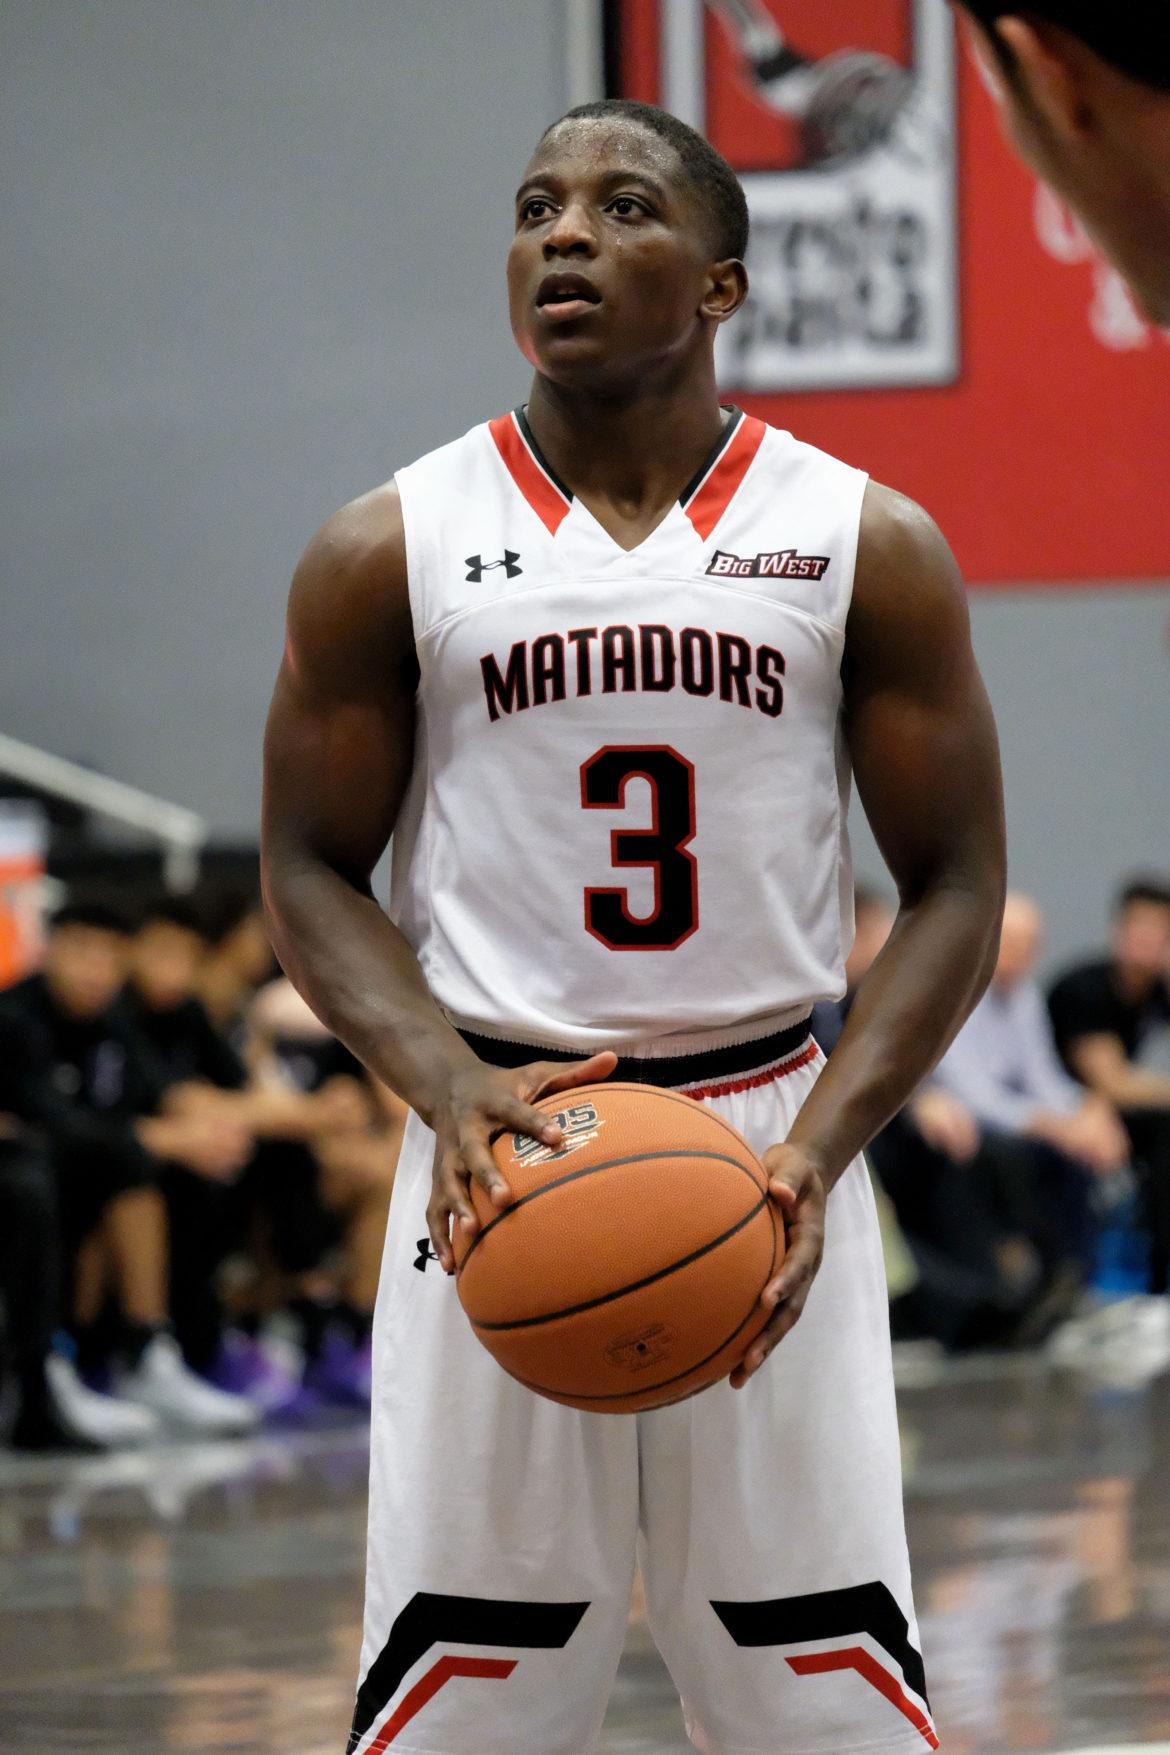 A+CSUn+Men%27s+basketball+player+in+the+white+jersey+making+free+throw